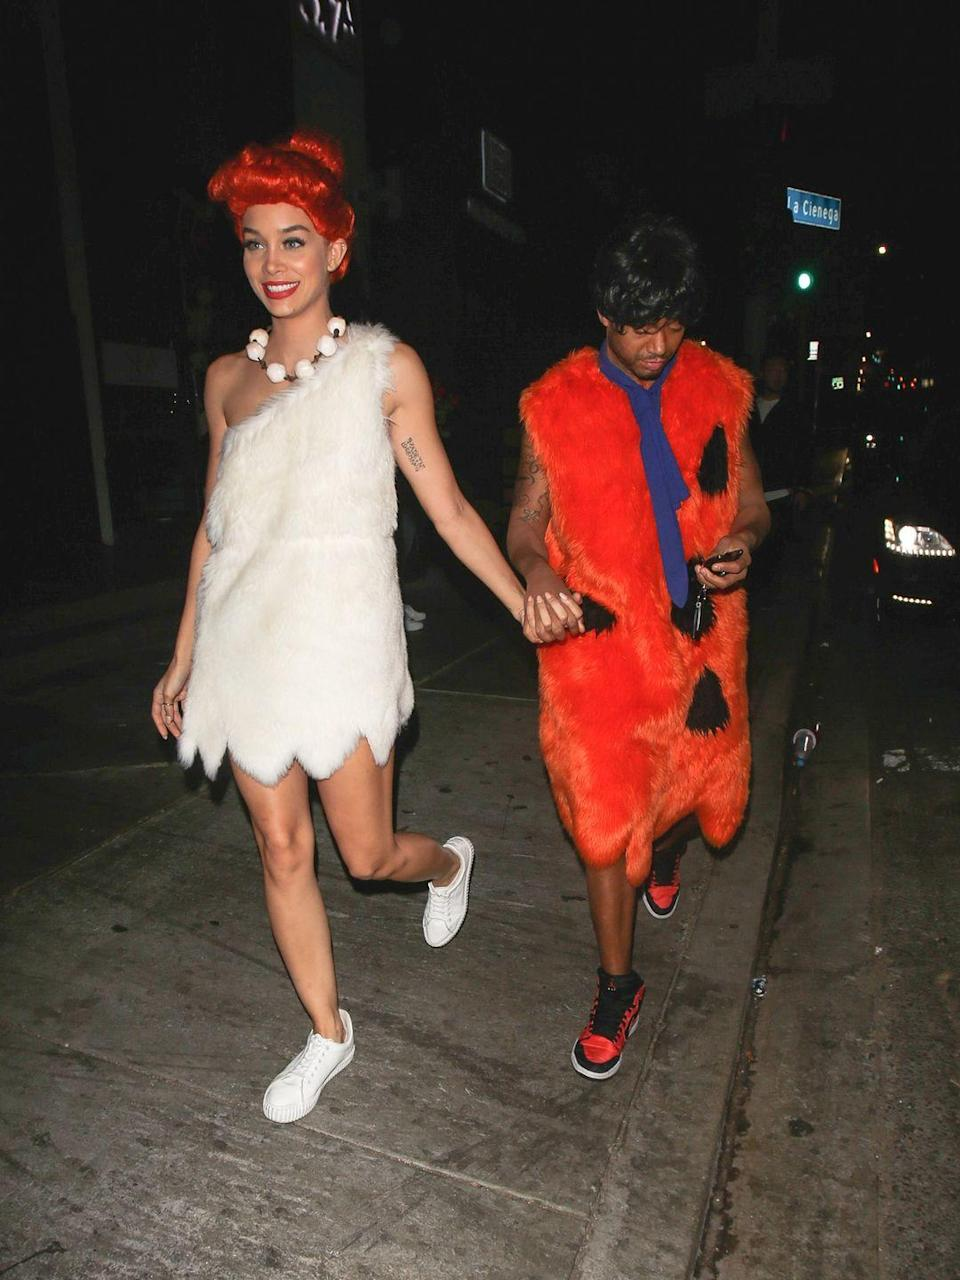 <p>Terrence J and Jasmine Sanders traveled back to pre-historic time to embody the cartoon characters from <em>The Flintstones</em> for Halloween. Yabba dabba doo!</p>